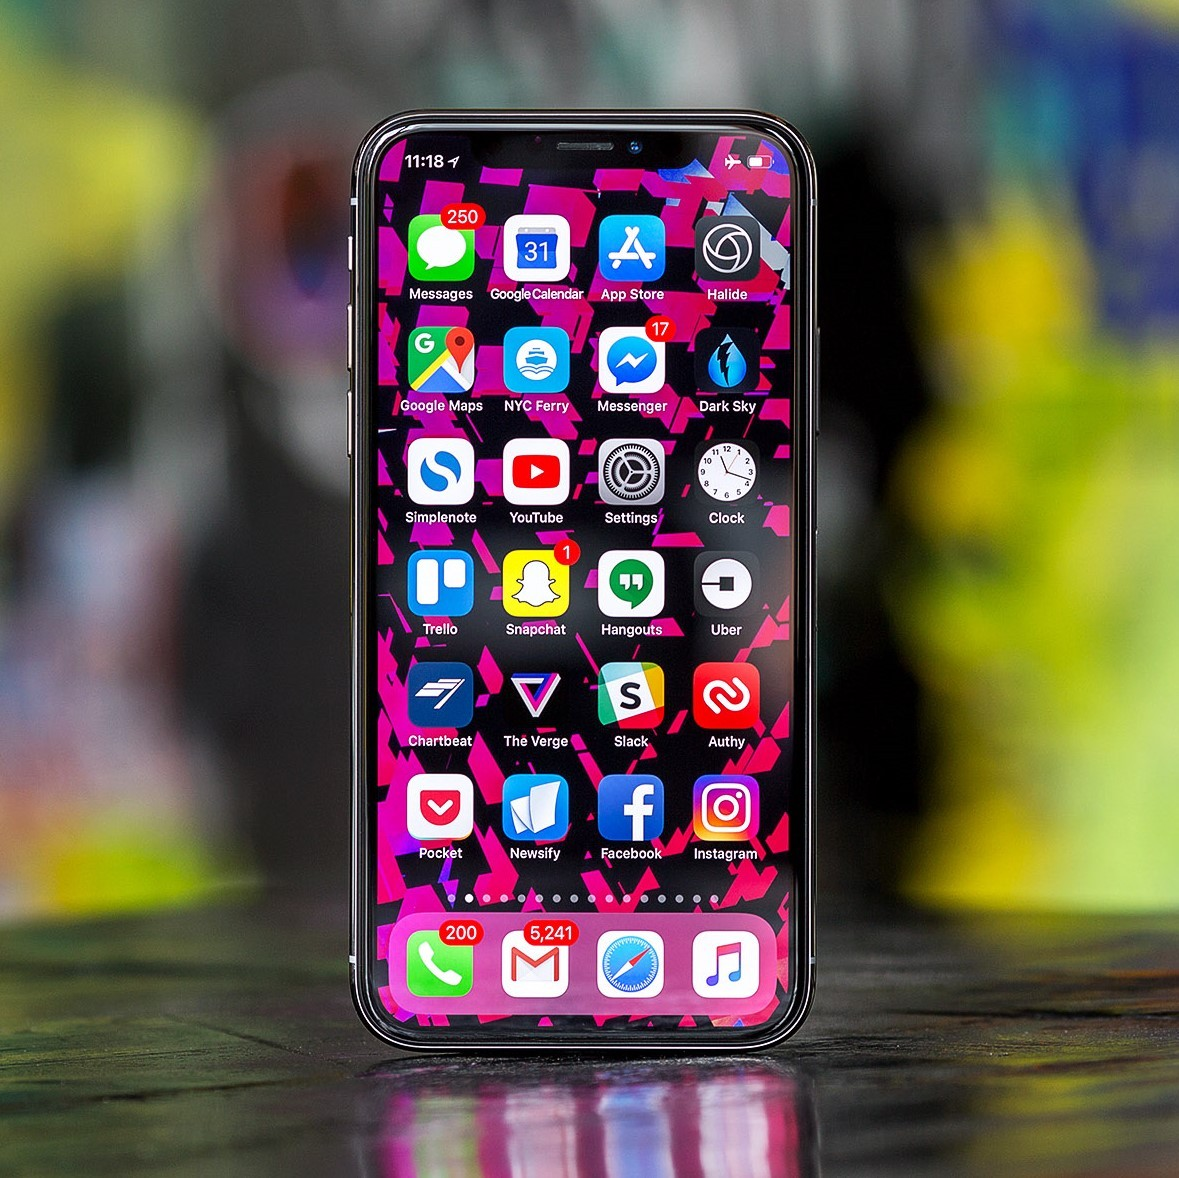 cach keo dai thoi luong pin tren iphone x hinh anh 2